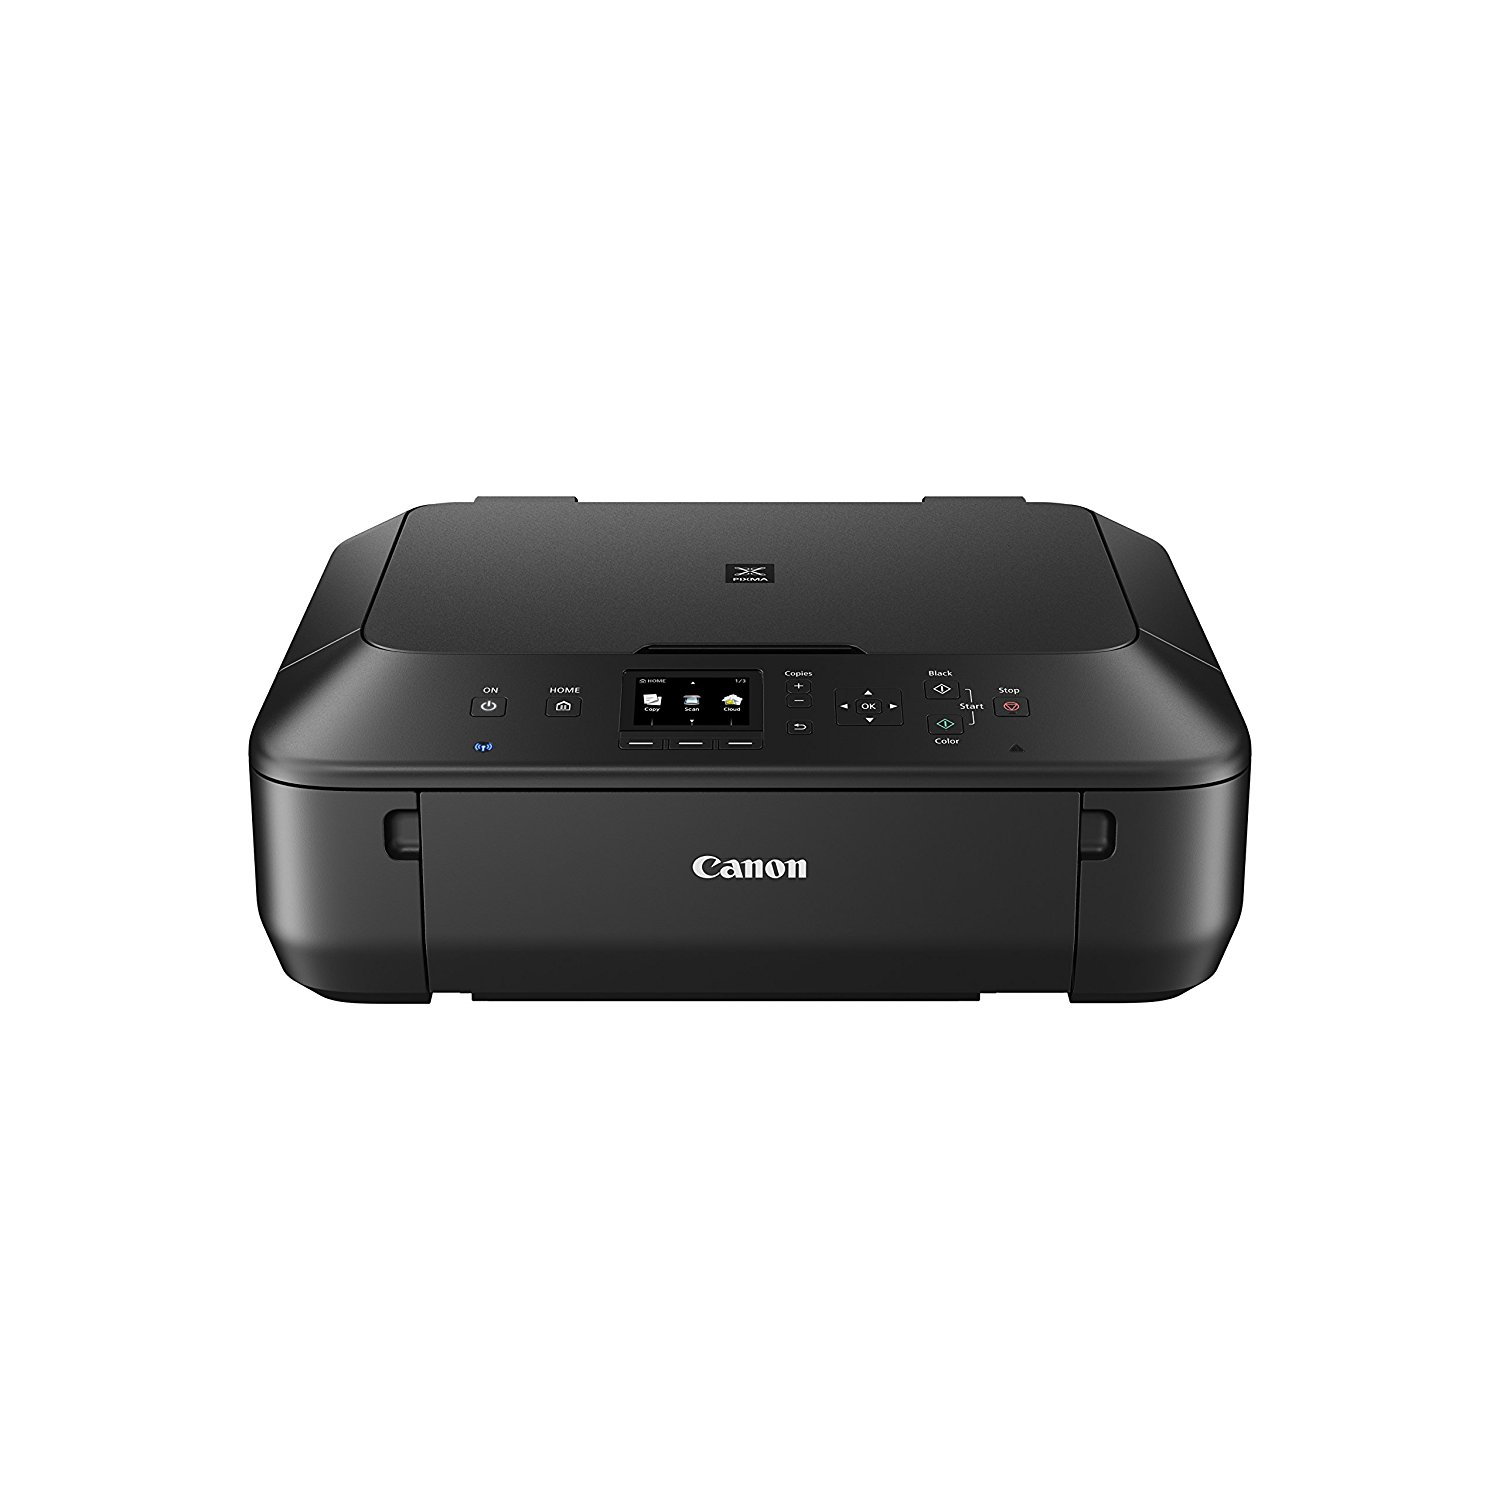 Front-Canon-Pixma-MG5650-Multifunktionsgeraet-Drucker-Kopierer-Scanner-USB-WLAN-Pixma-Cloud-DNZ-Networks.com